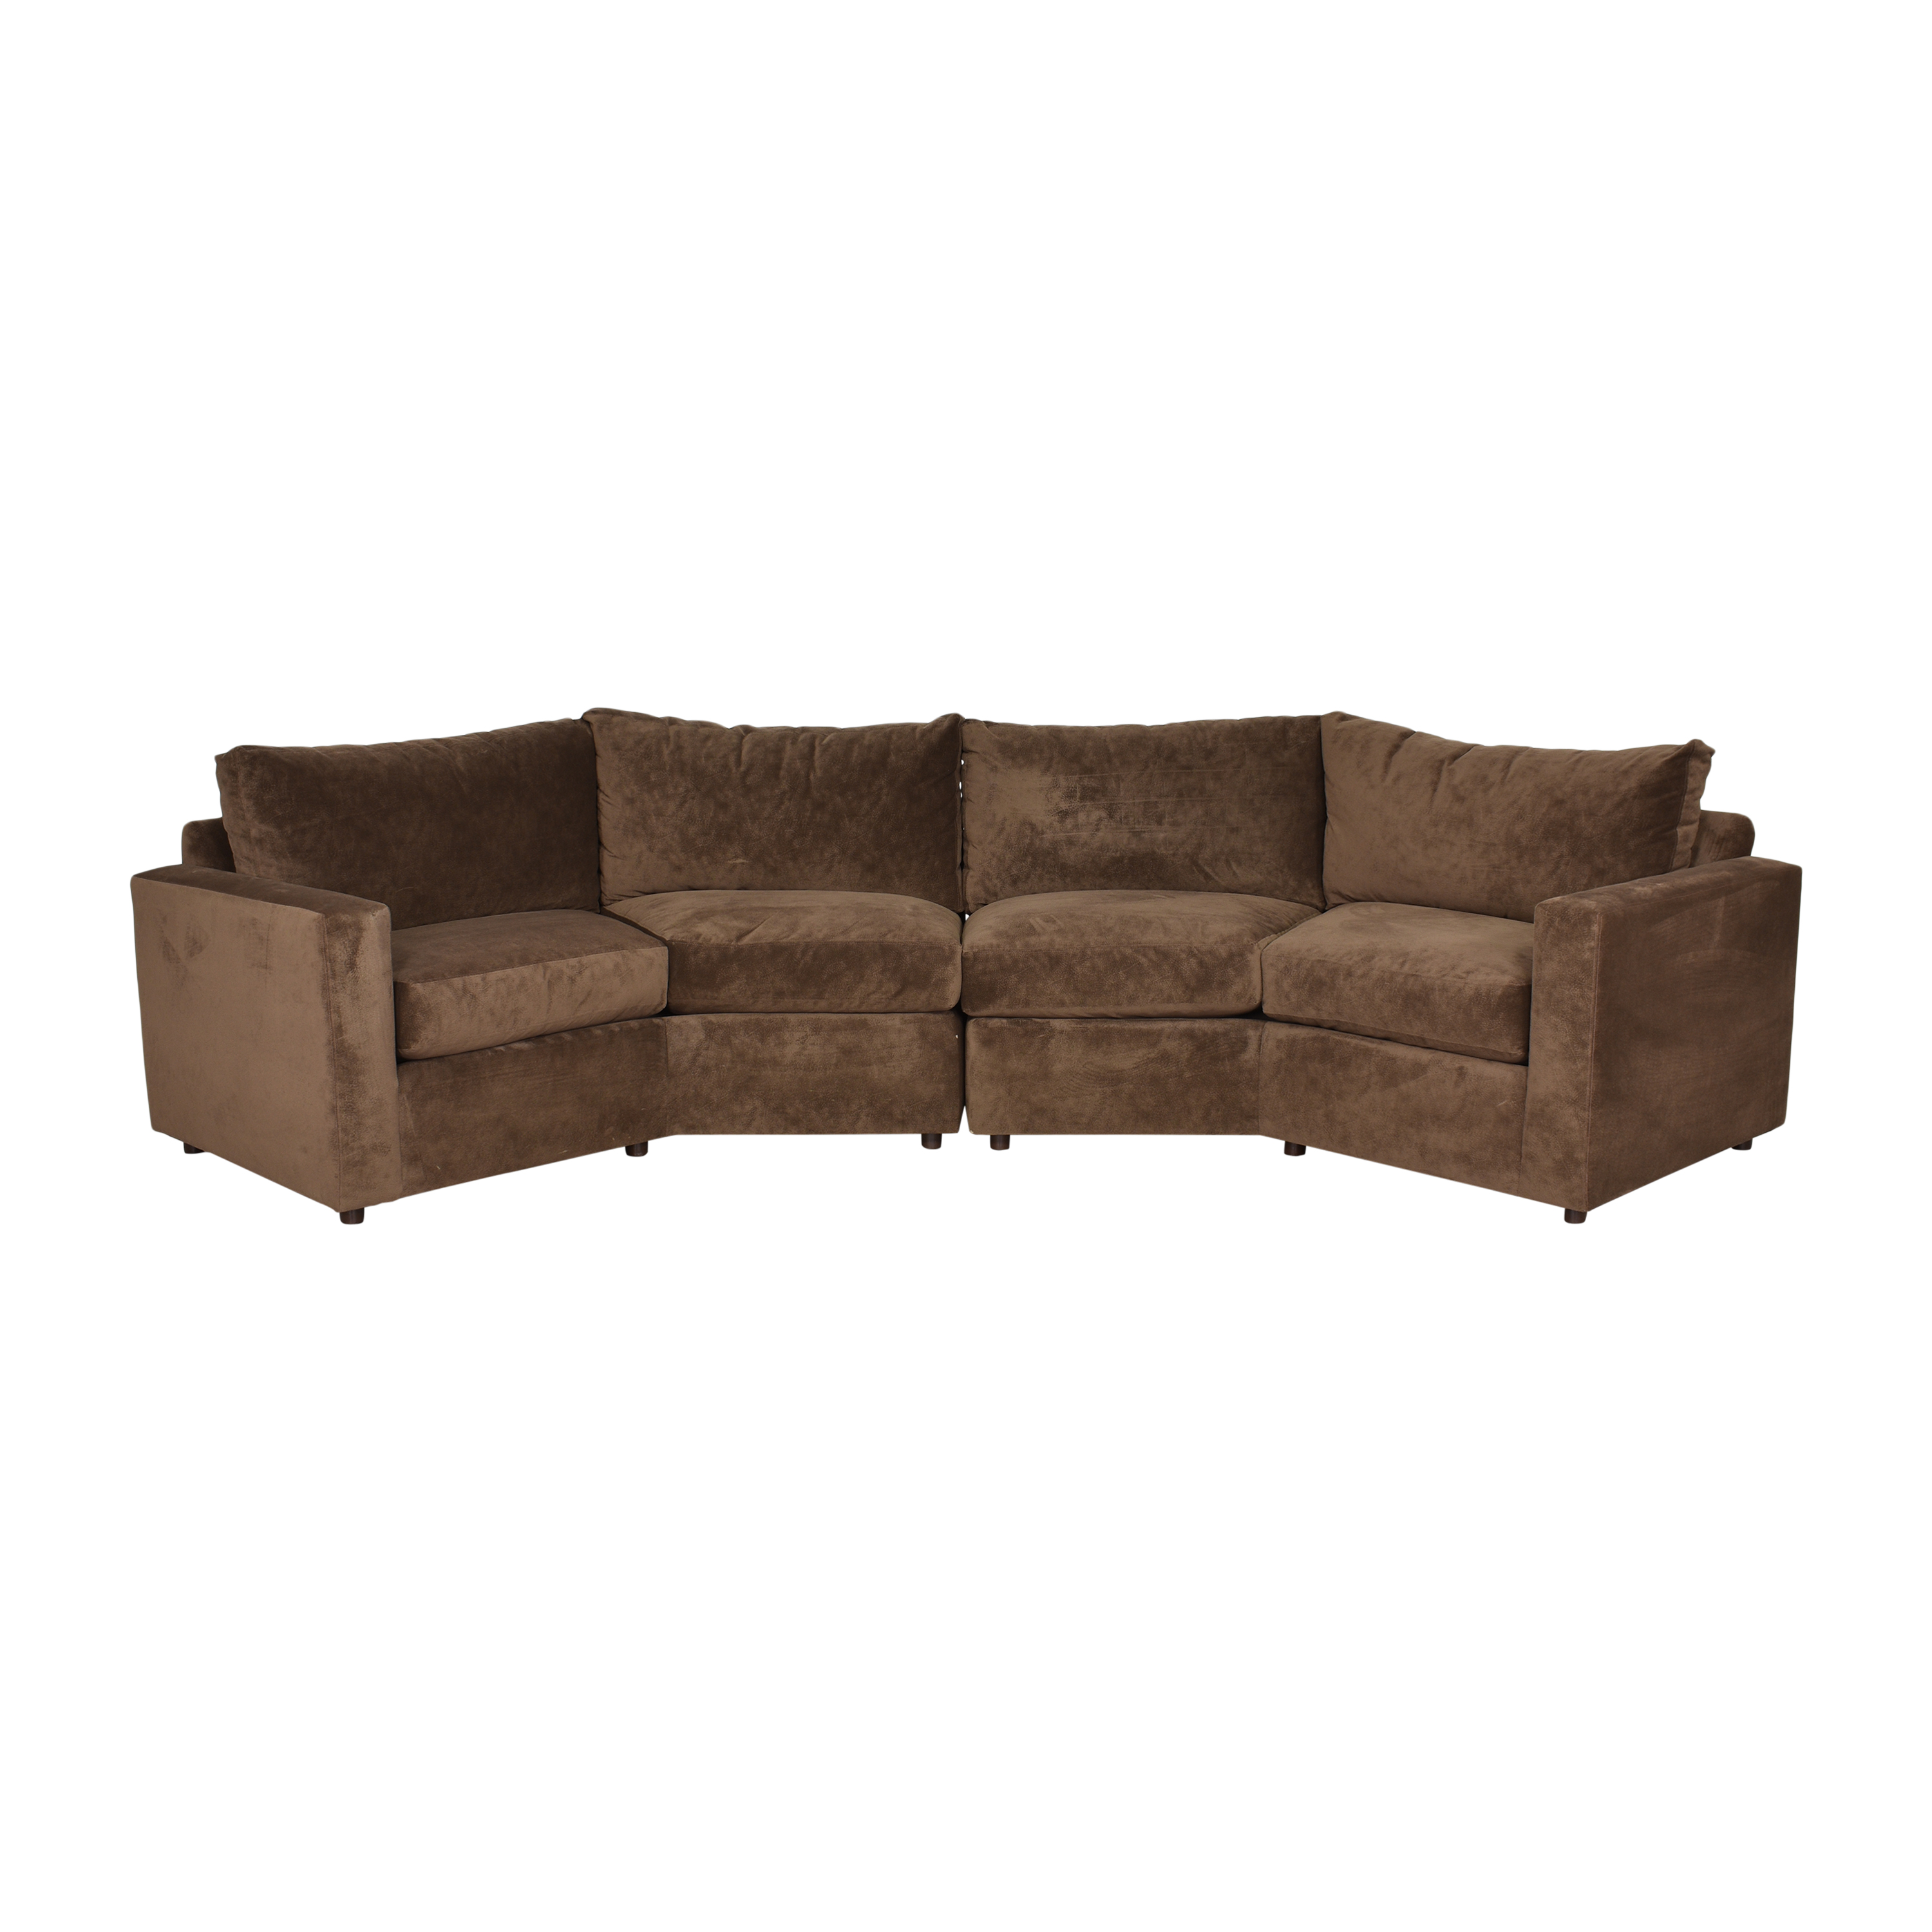 Two Piece Crescent Sectional Sofa dimensions